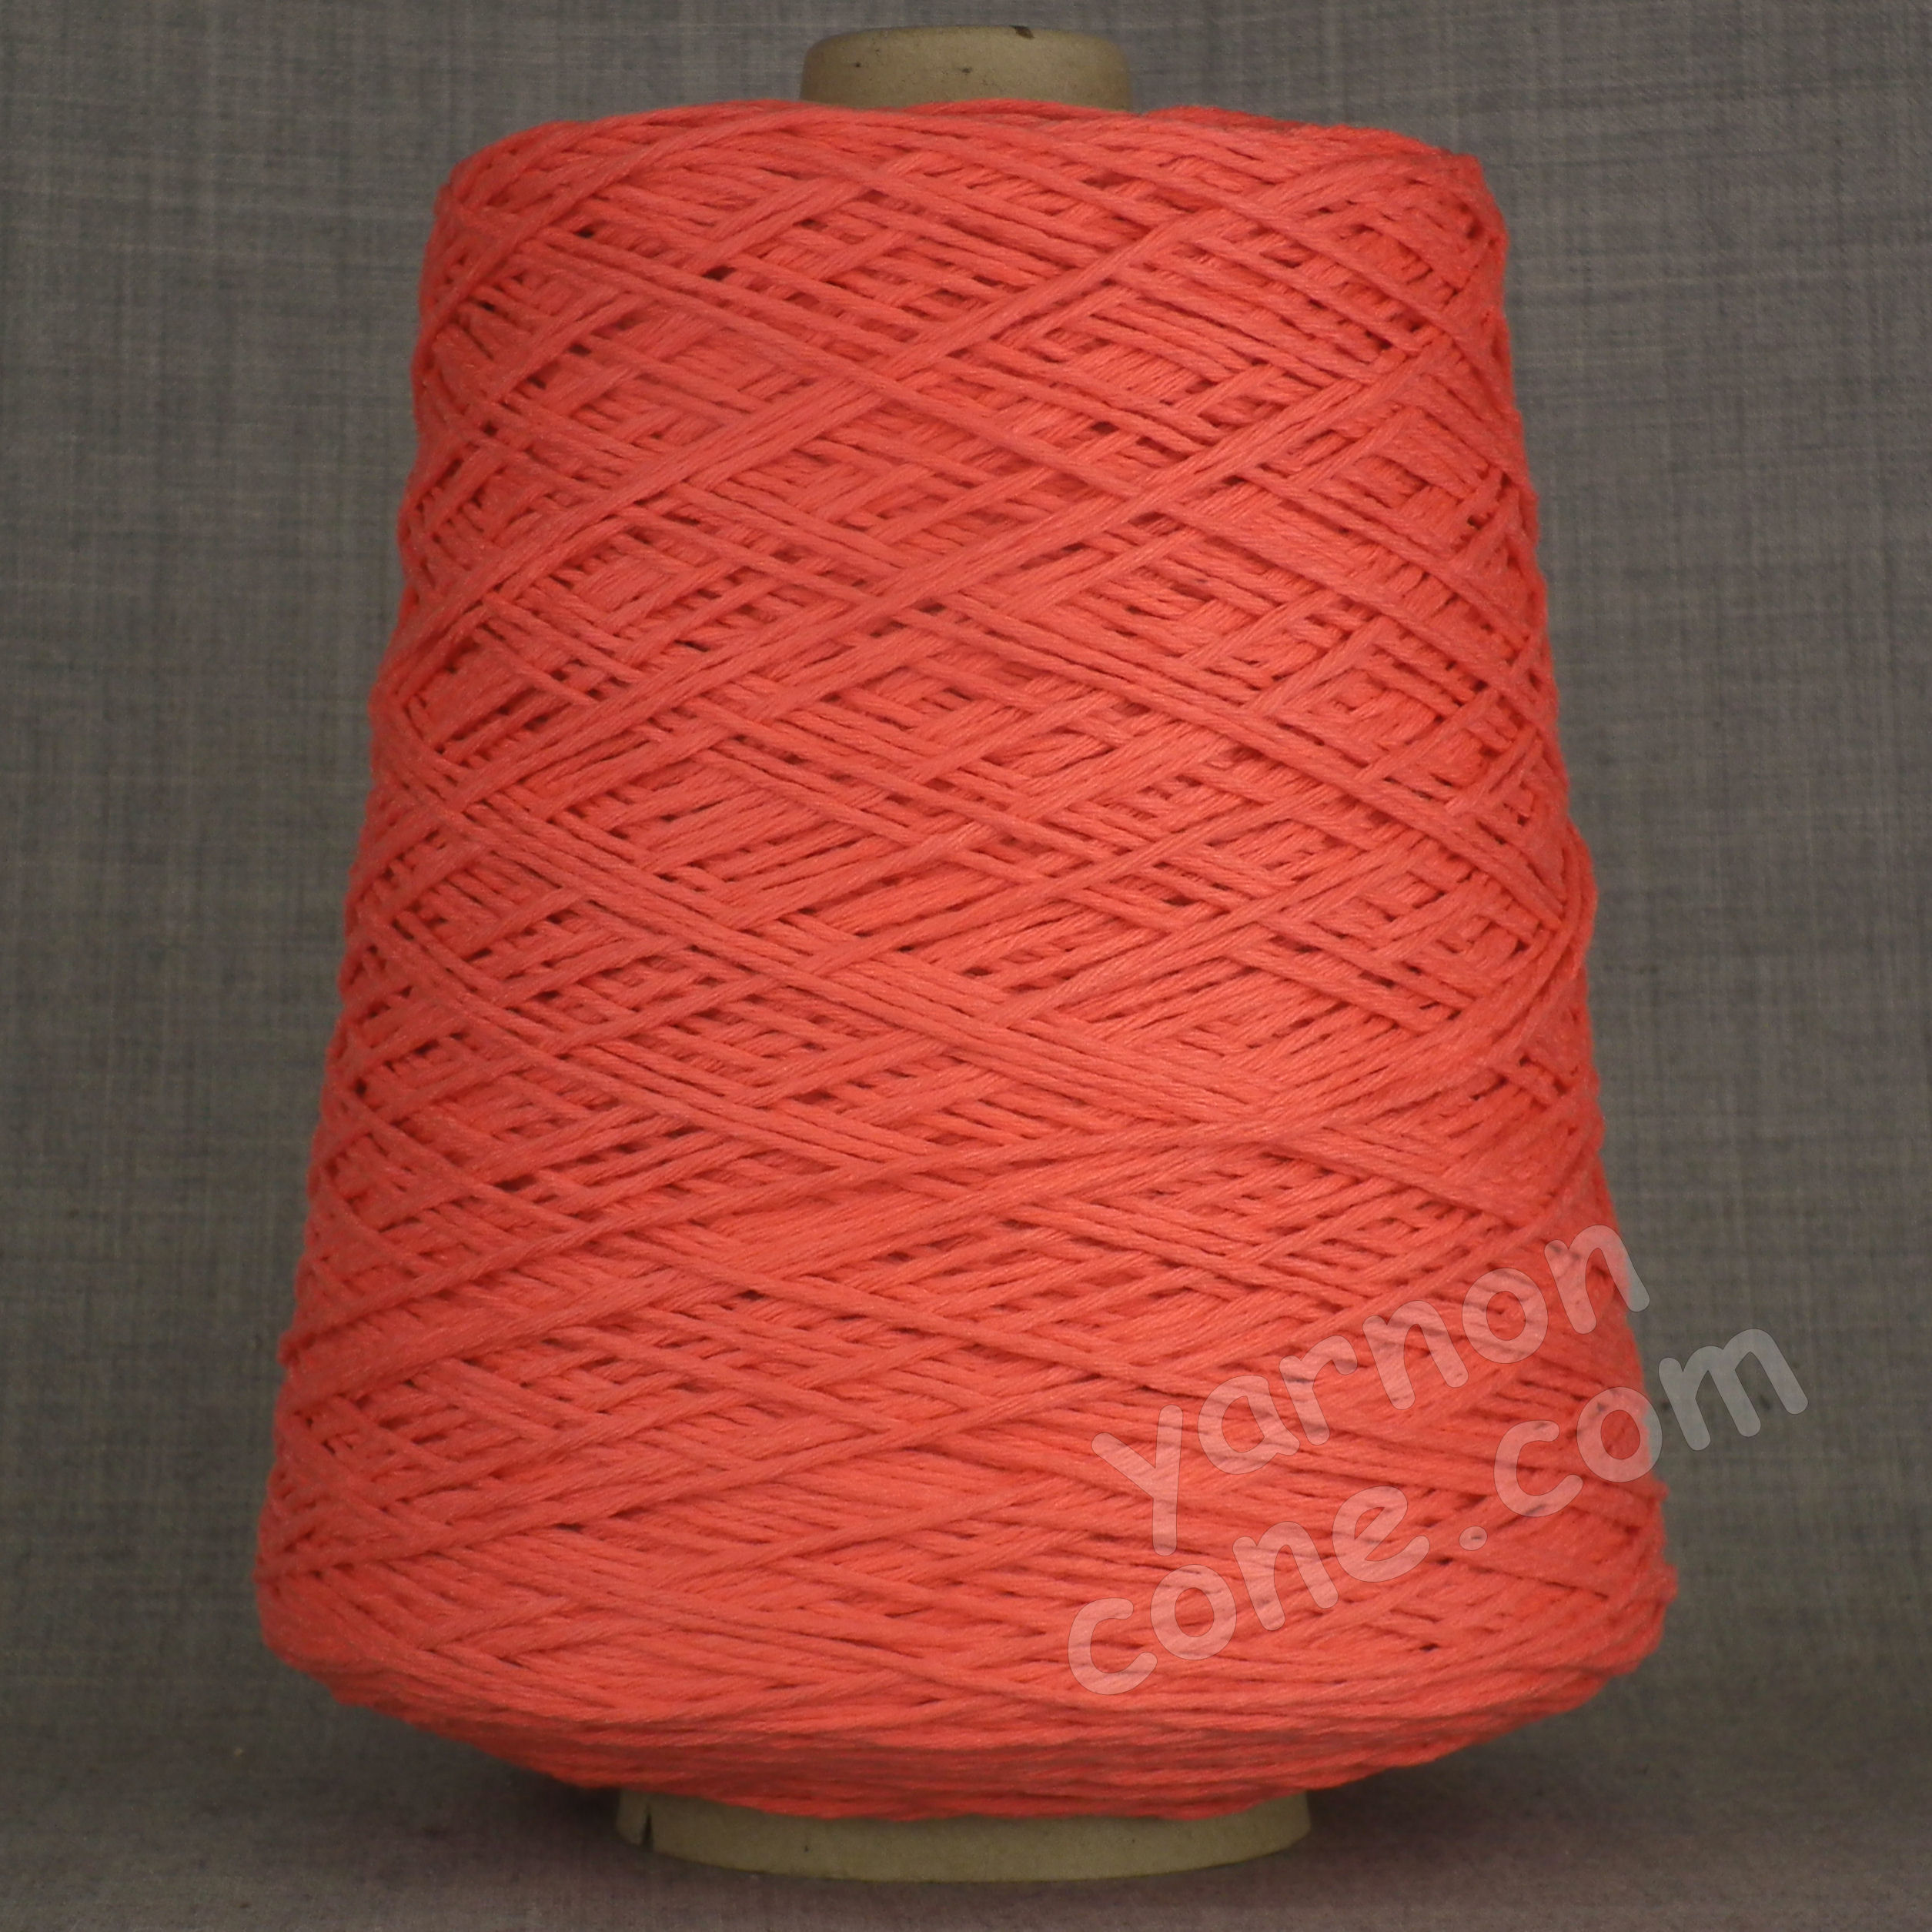 Double knitting DK soft pure cotton yarn on cone hand machine knitting weaving crochet coral